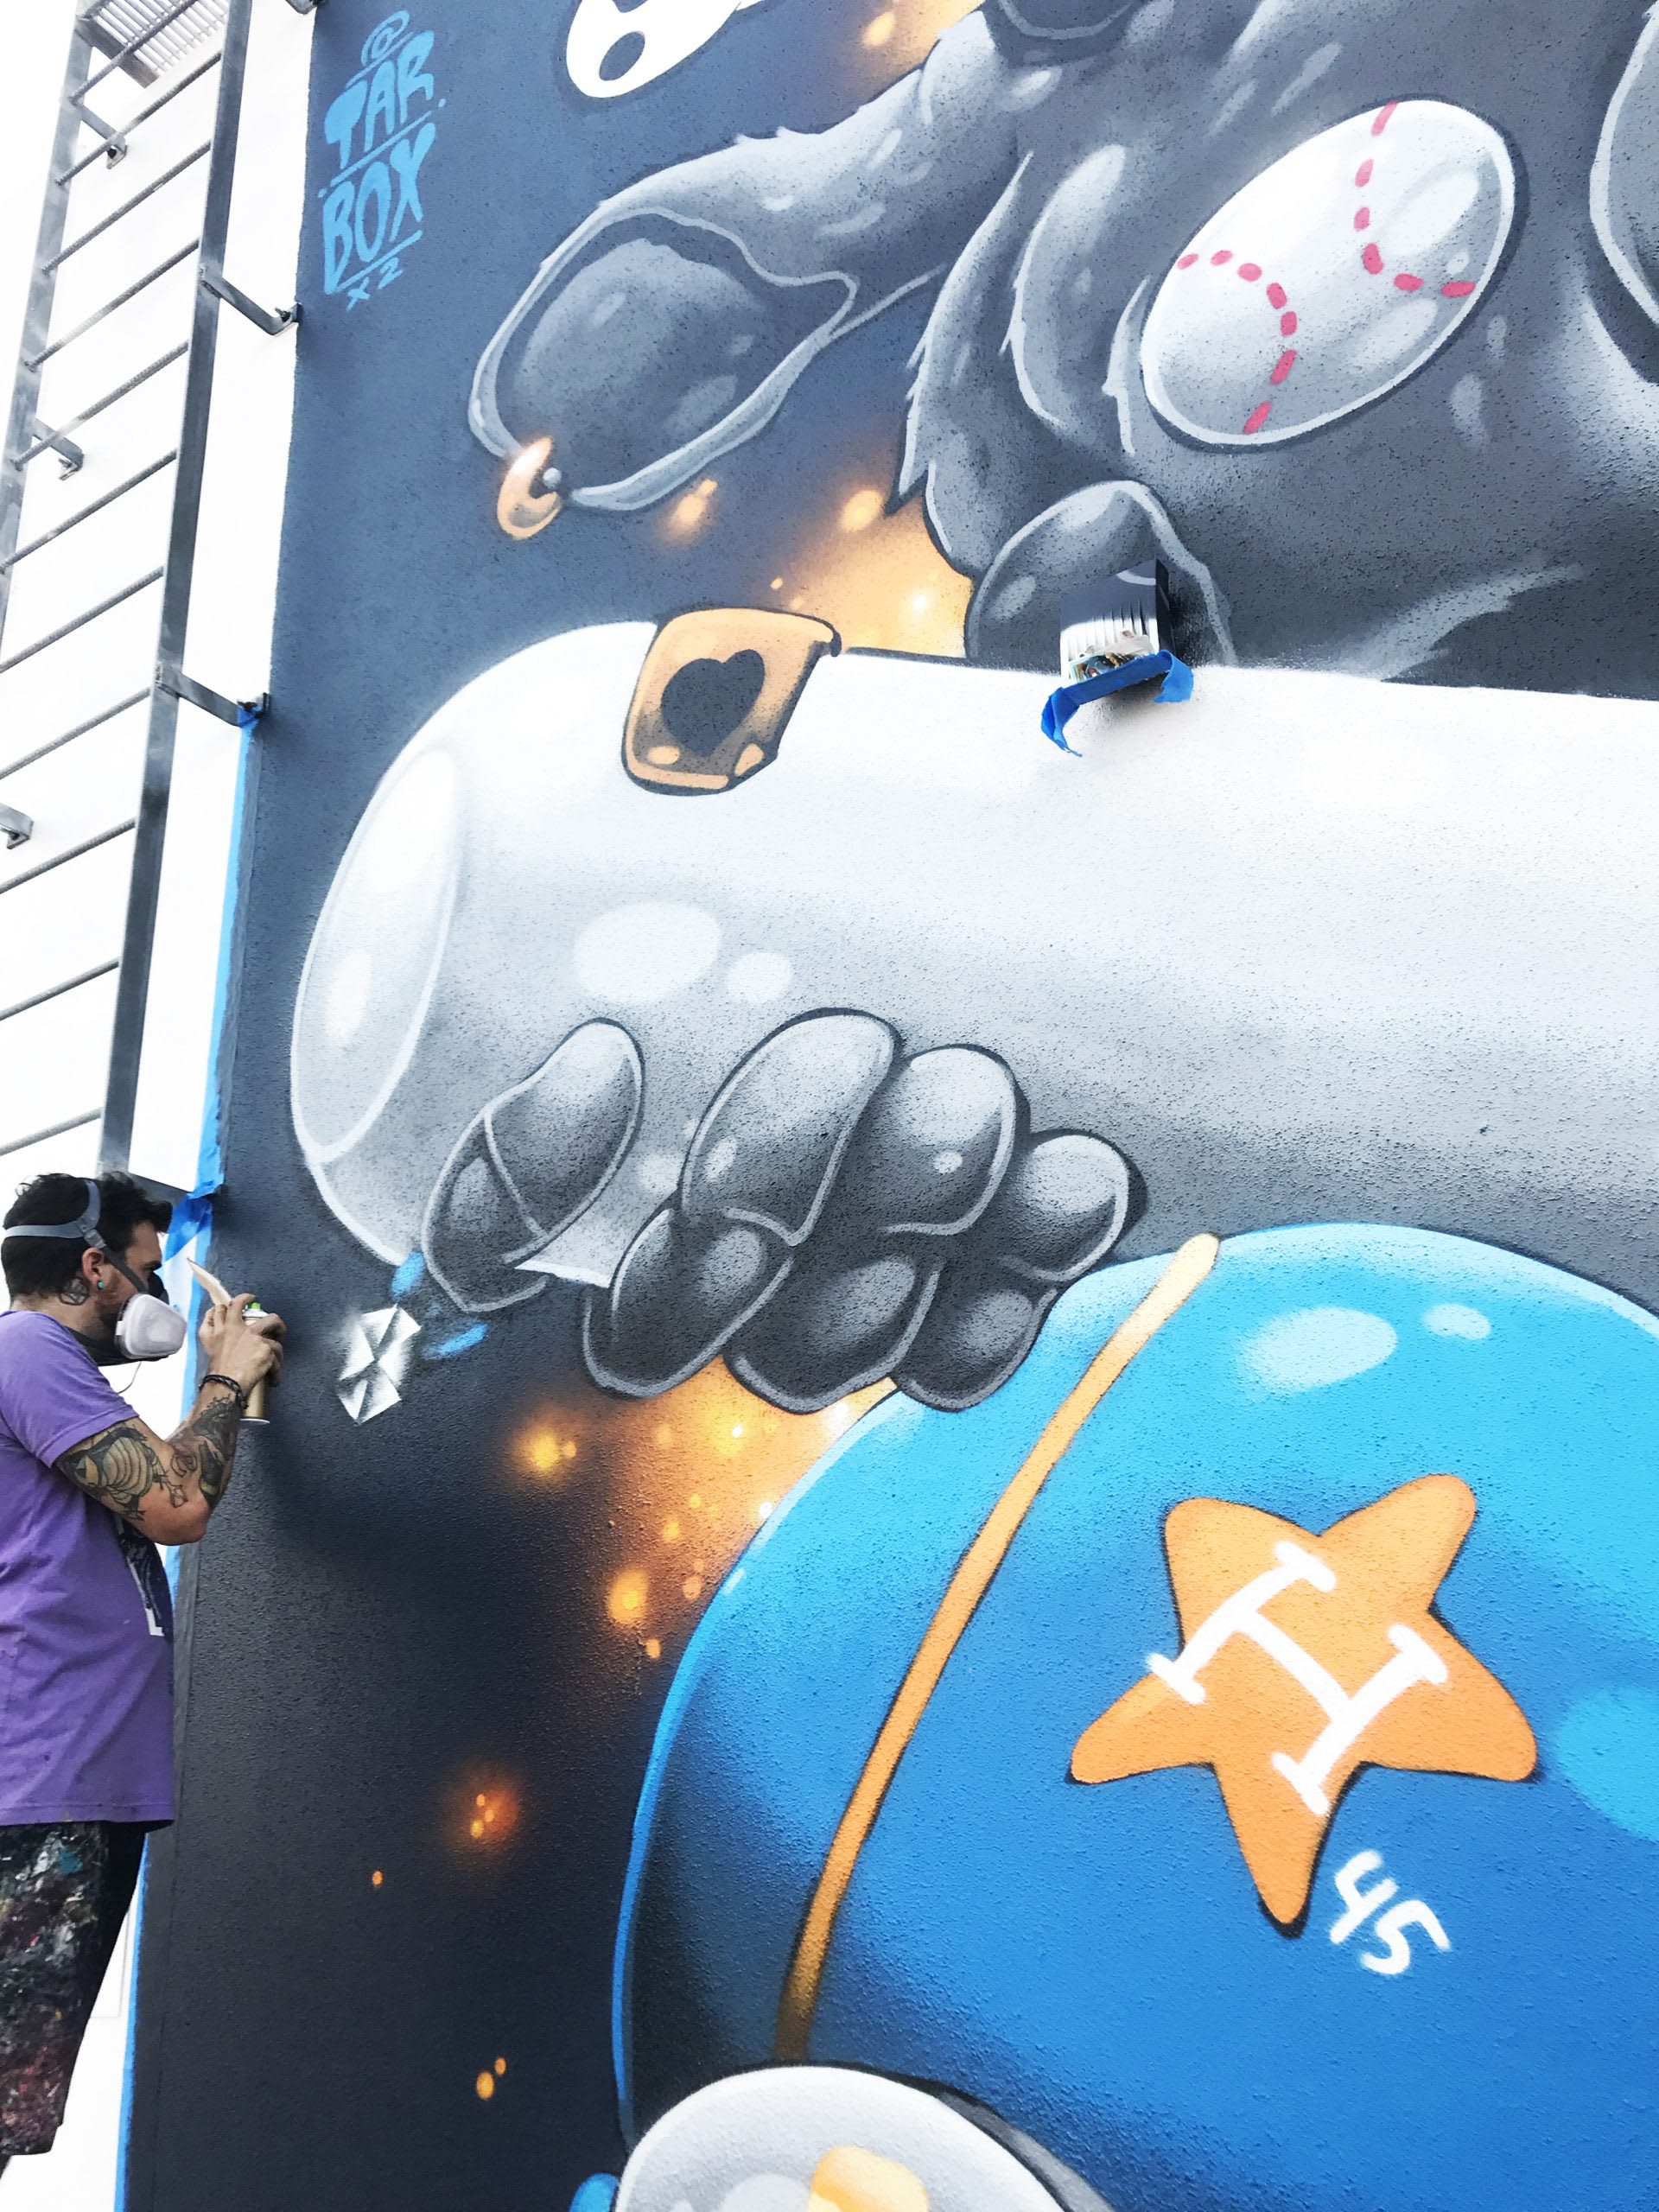 Houston Astros Win 2 Tarboxx Mural